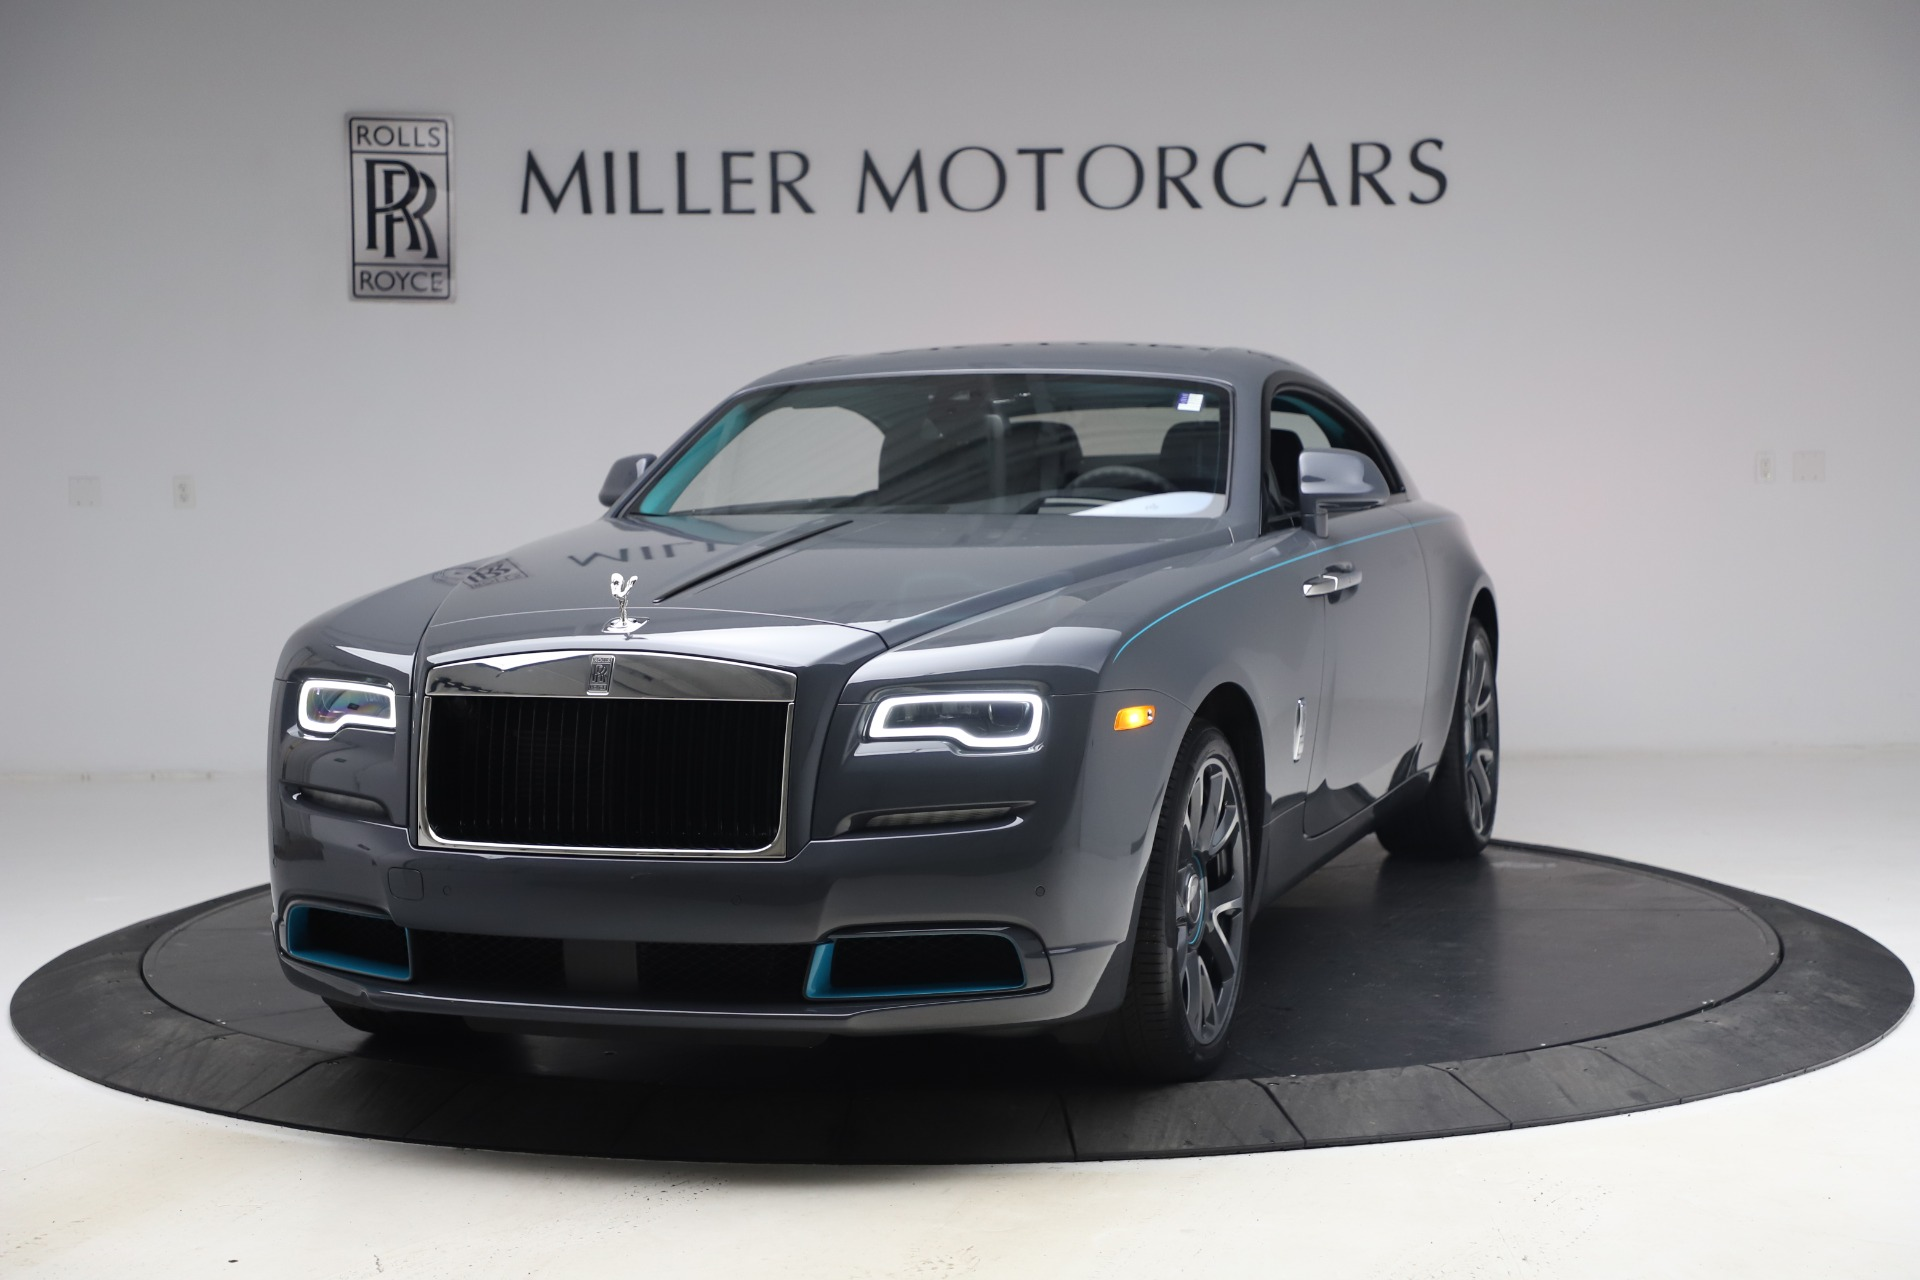 New 2021 Rolls-Royce Wraith KRYPTOS for sale Call for price at Rolls-Royce Motor Cars Greenwich in Greenwich CT 06830 1